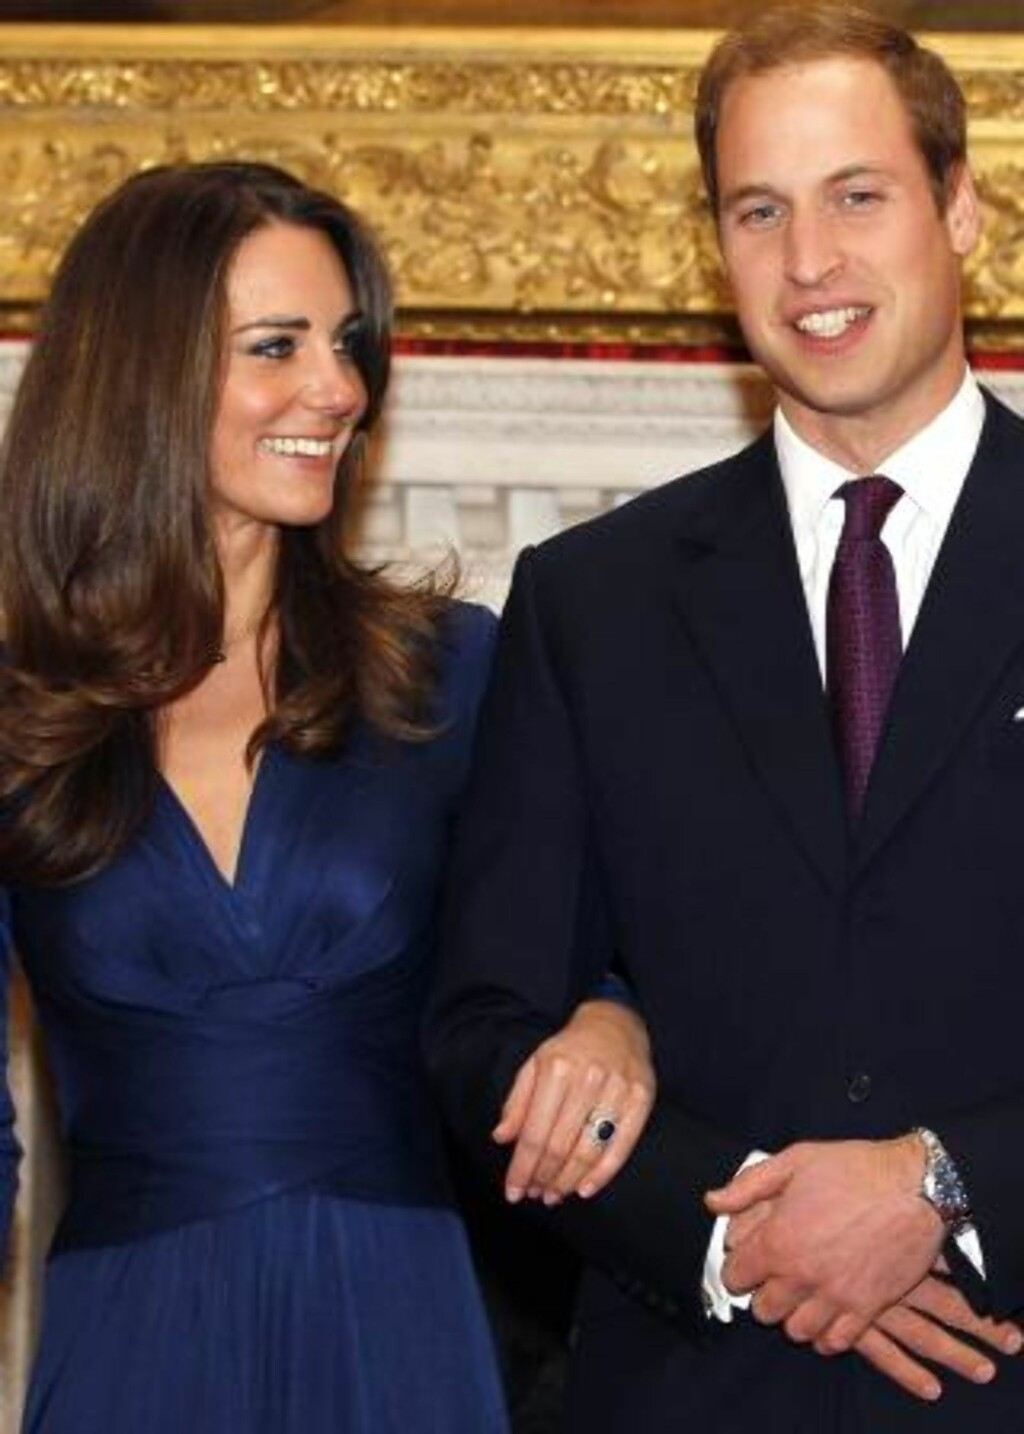 OG KONGELIG FORLOVELSE: Britene jublet da prins William forlovet seg med Kate. Foto: AP Photo/Kirsty Wigglesworth